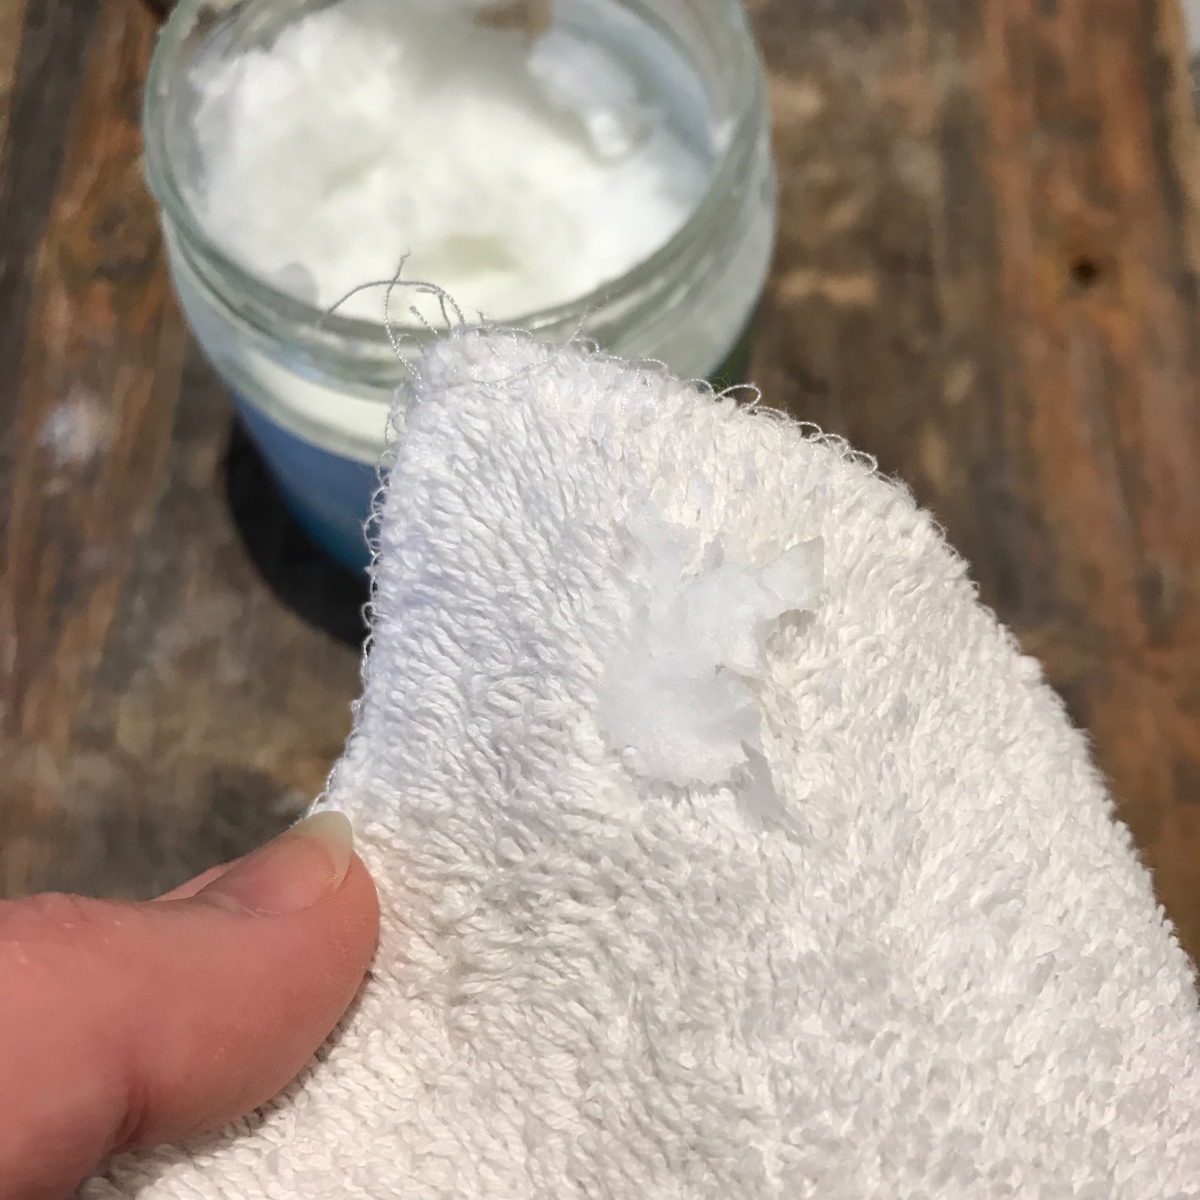 handmade haven, organic cotton makeup pad with organic coconut oil as makeup remover